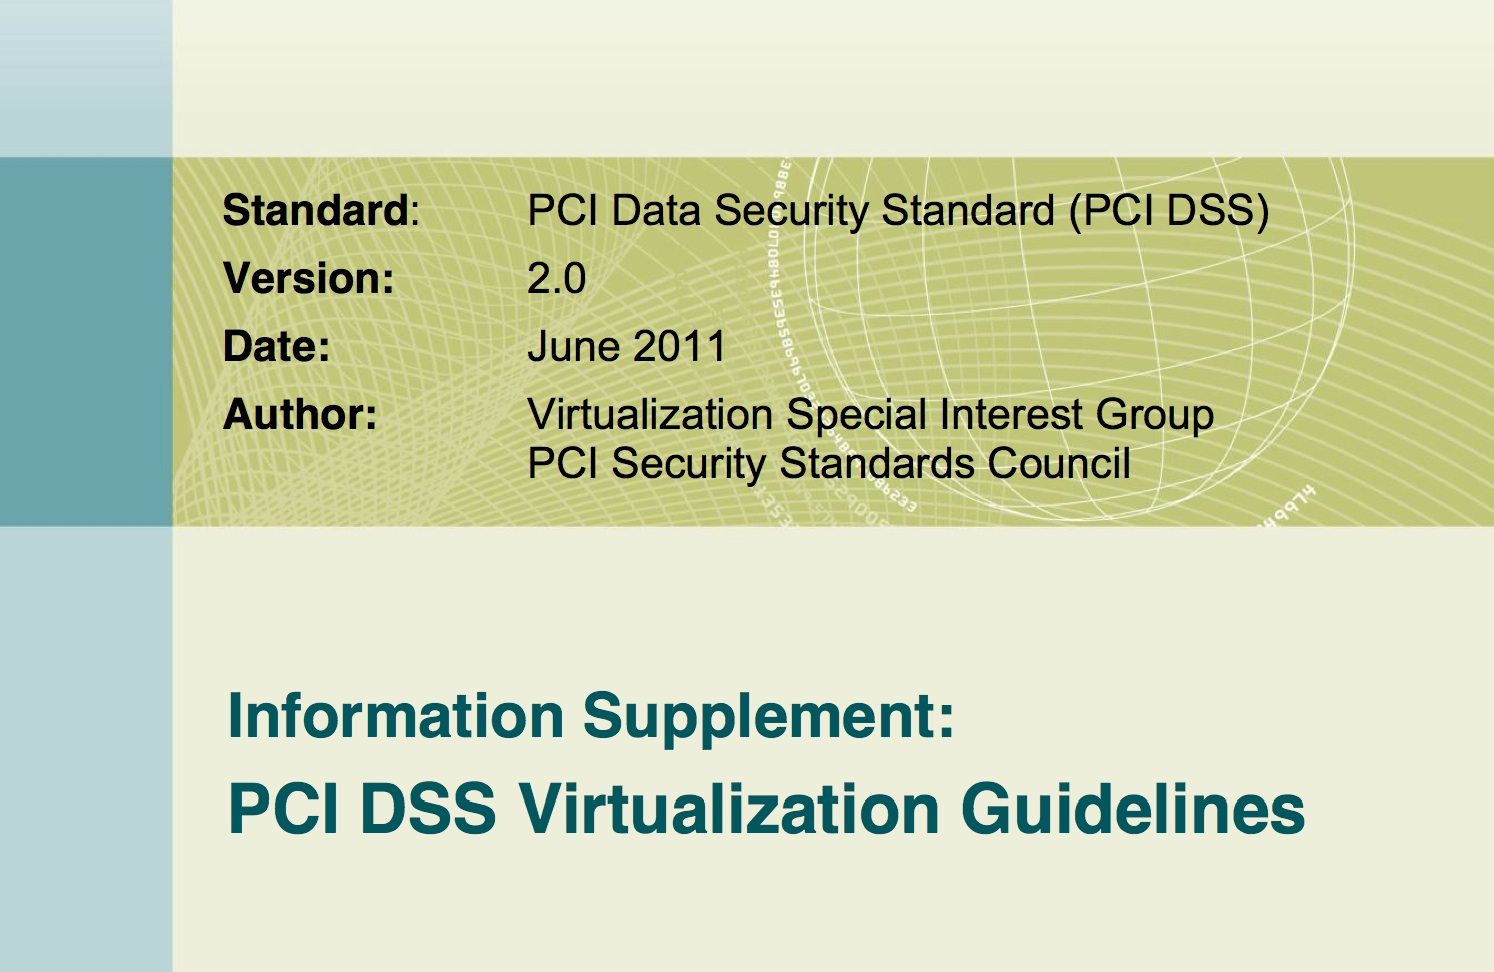 PCI DSS Virtualization Guidelines 2.0